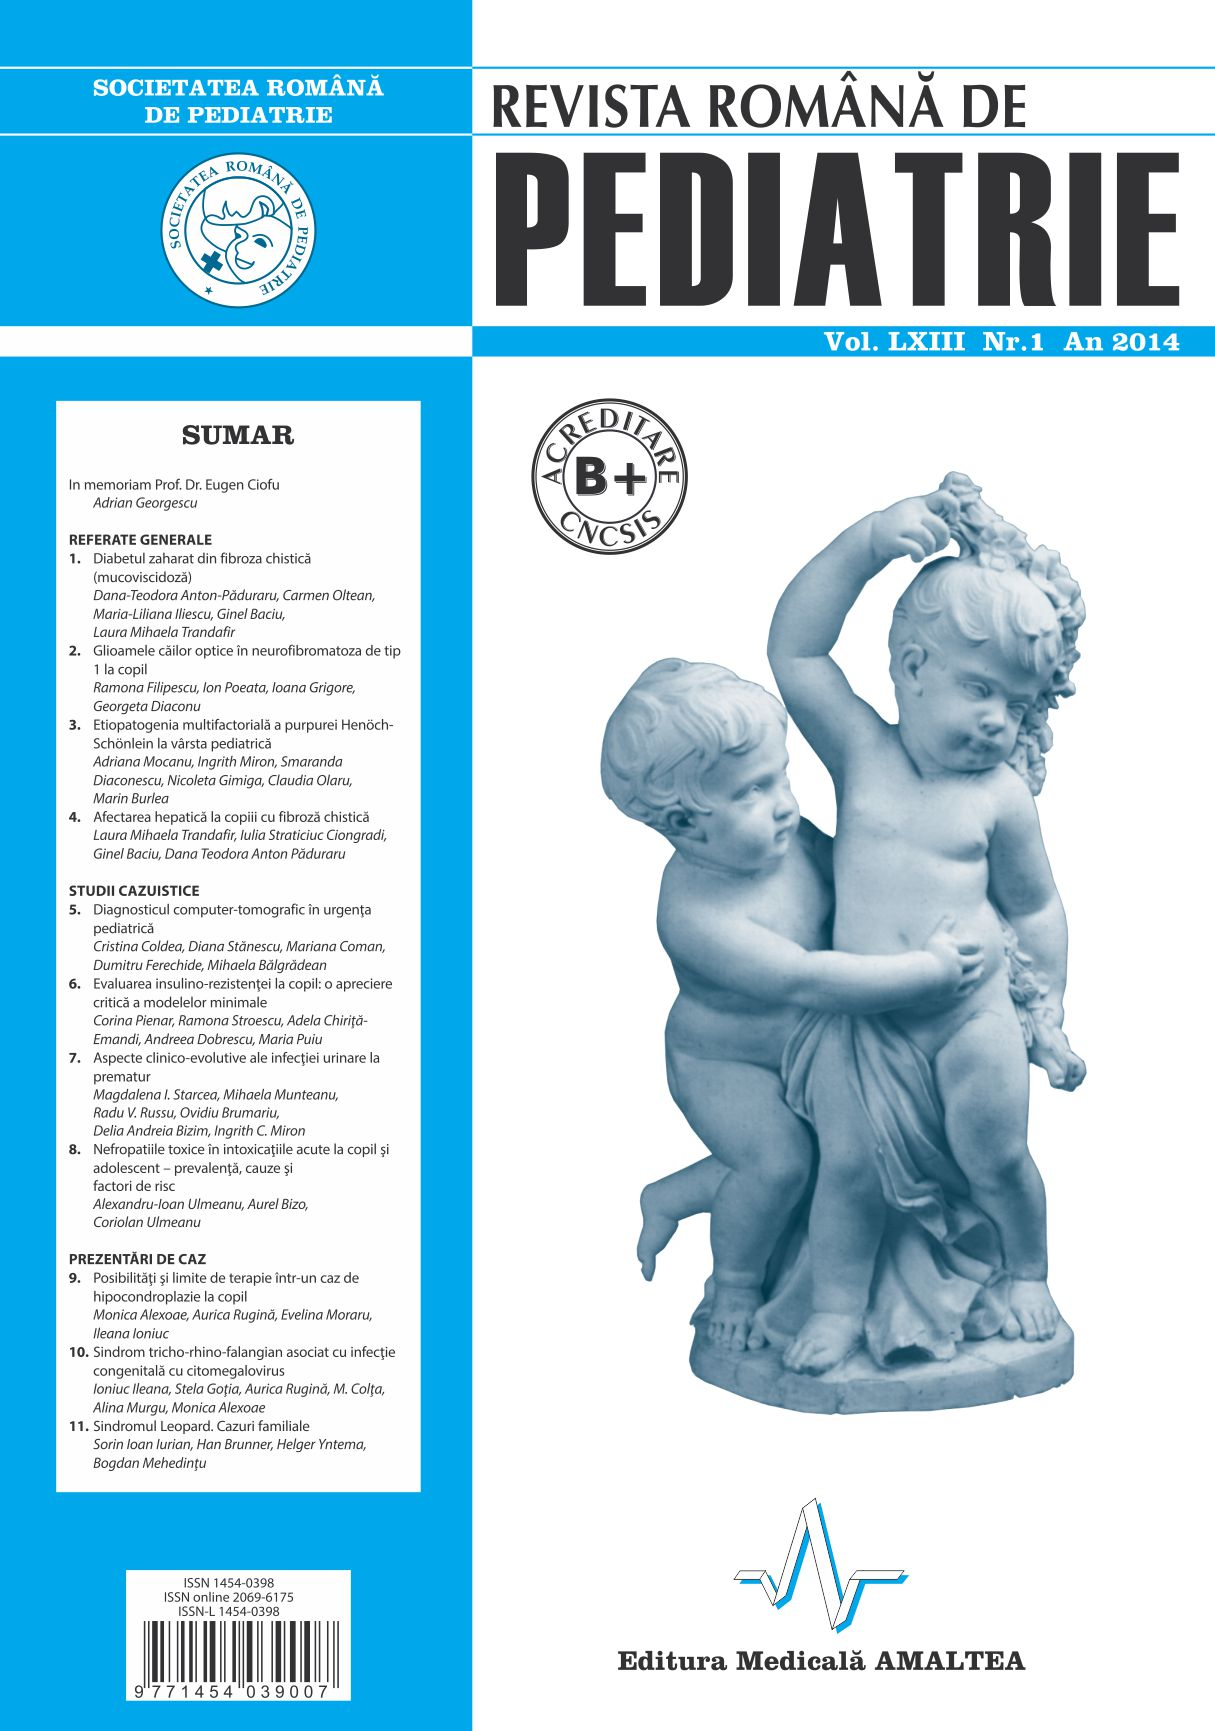 Revista Romana de PEDIATRIE | Volumul LXIII, Nr. 1, An 2014